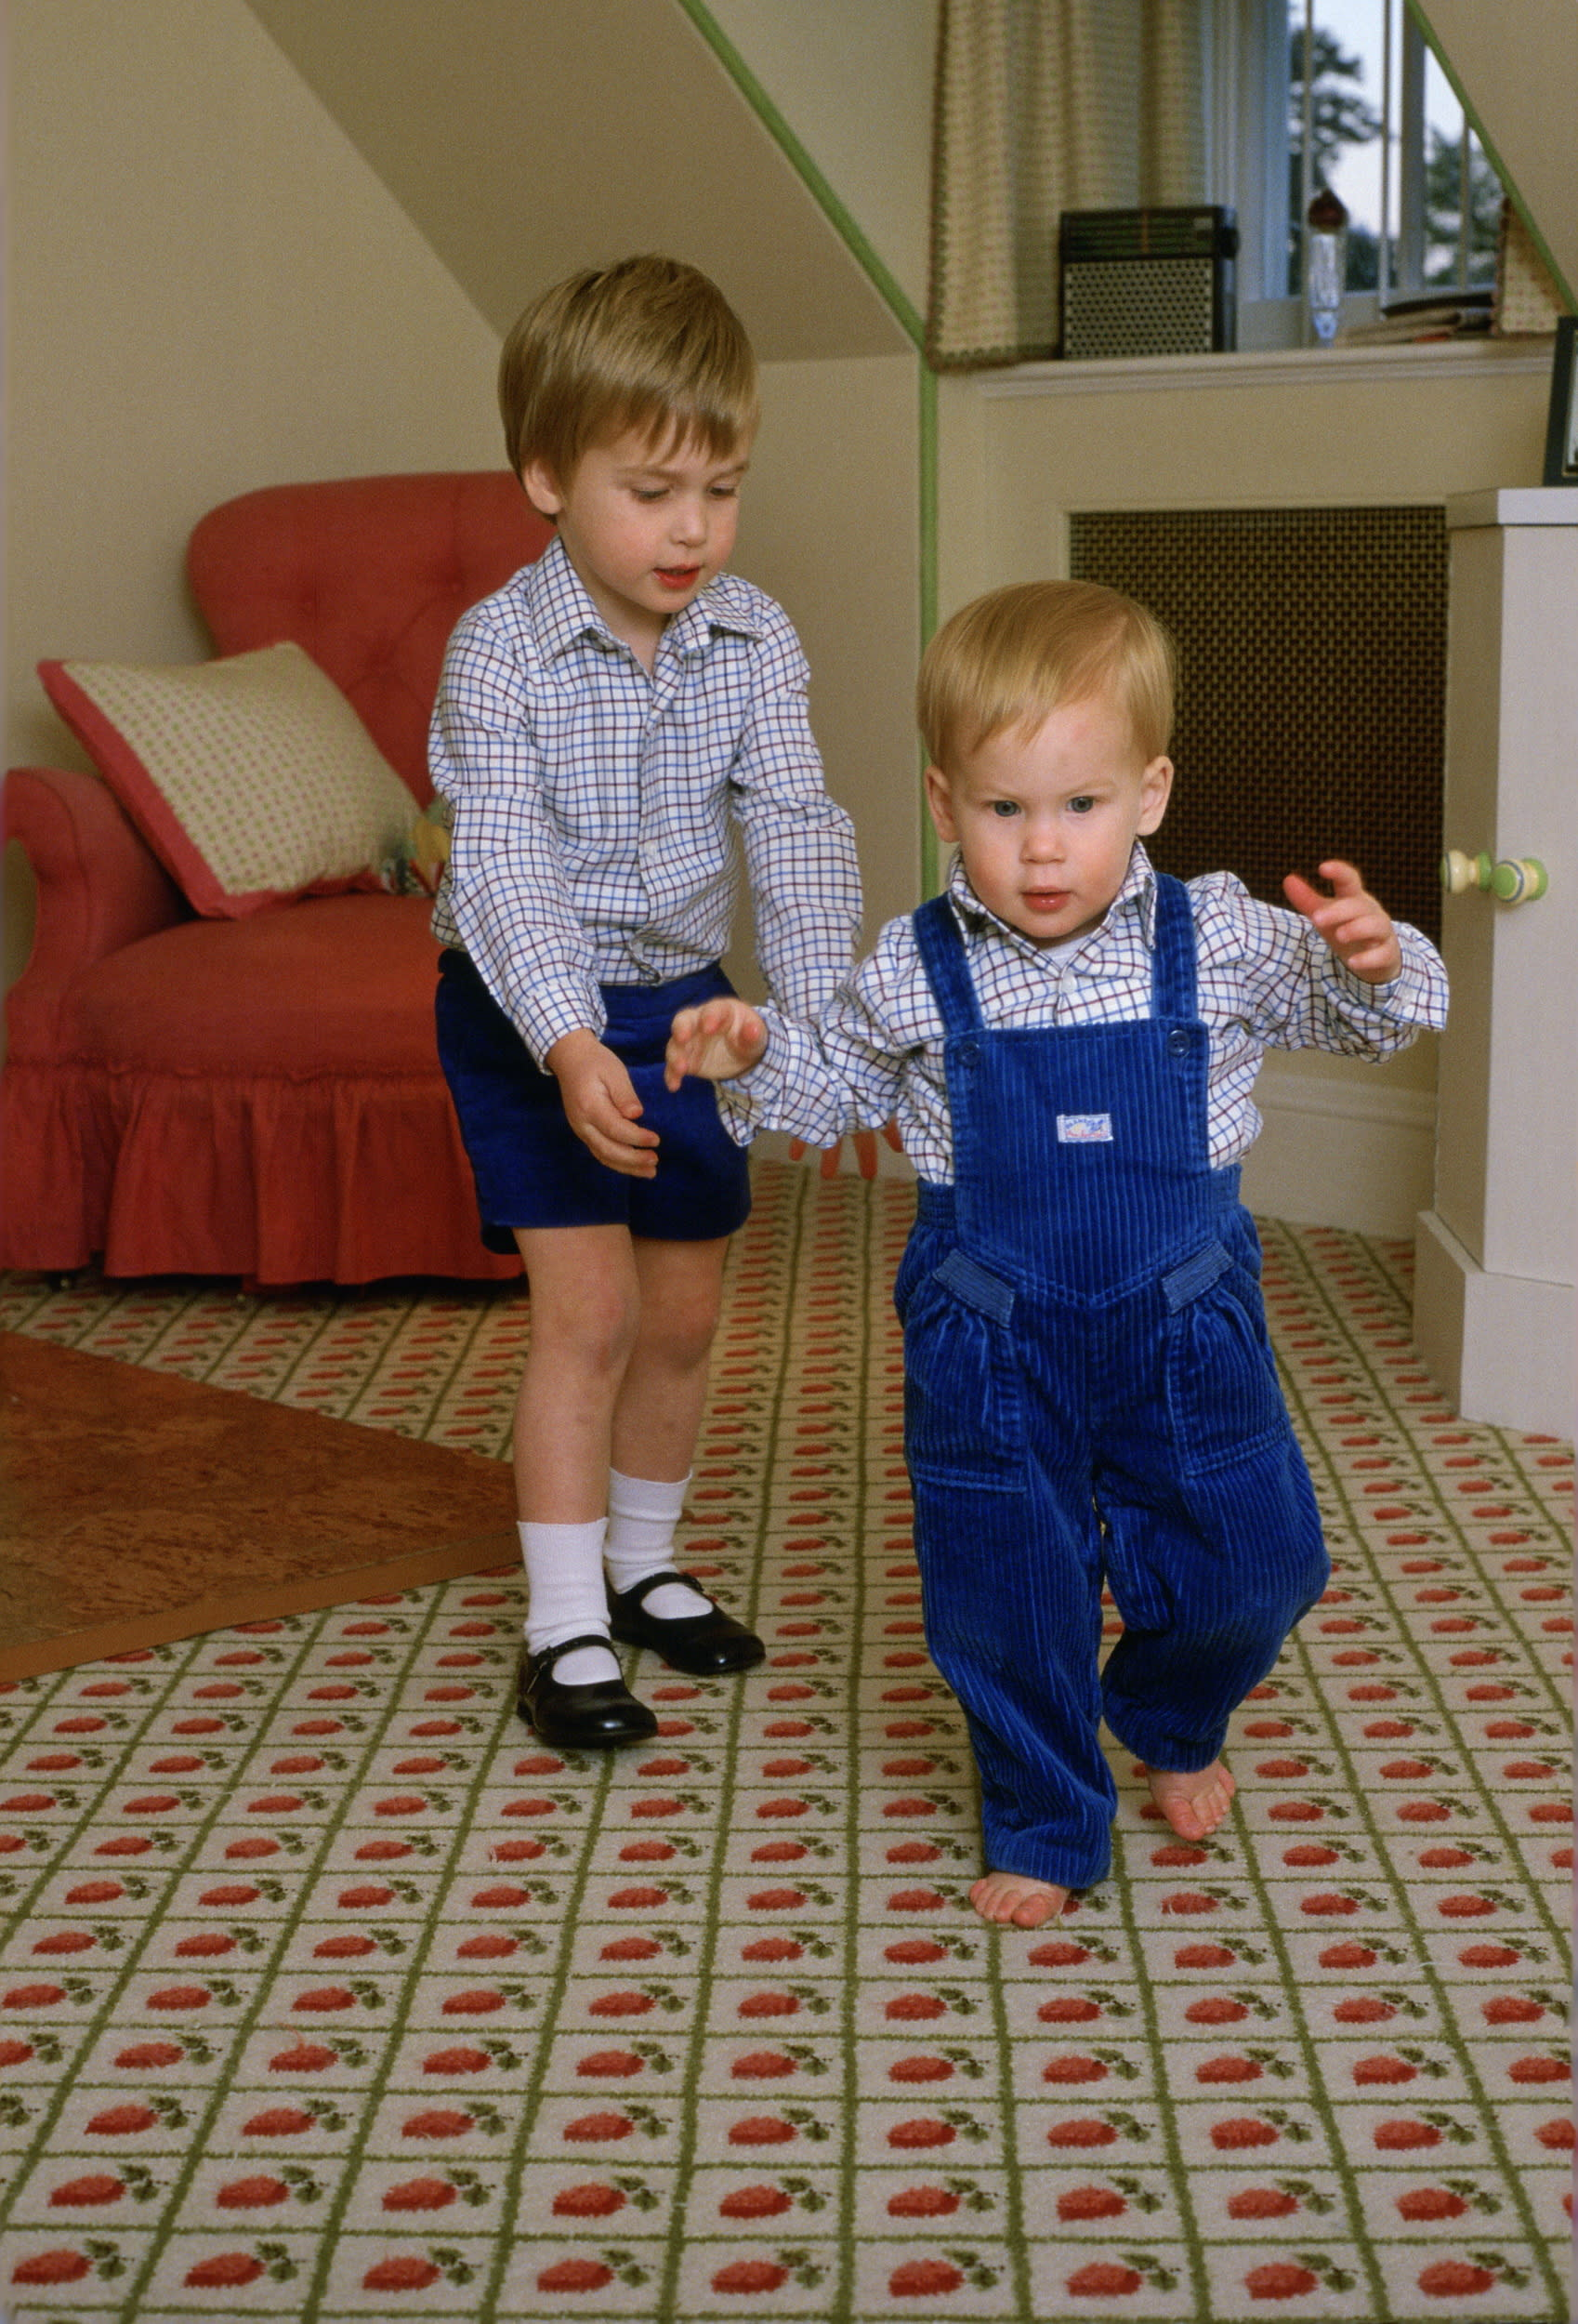 LONDON, UNITED KINGDOM - OCTOBER 22:  Prince William Standing Behind His Brother, Prince Harry, To Help Him As He Tries To Walk On His Own In The Playroom At Kensington Palace  (Photo by Tim Graham/Getty Images)